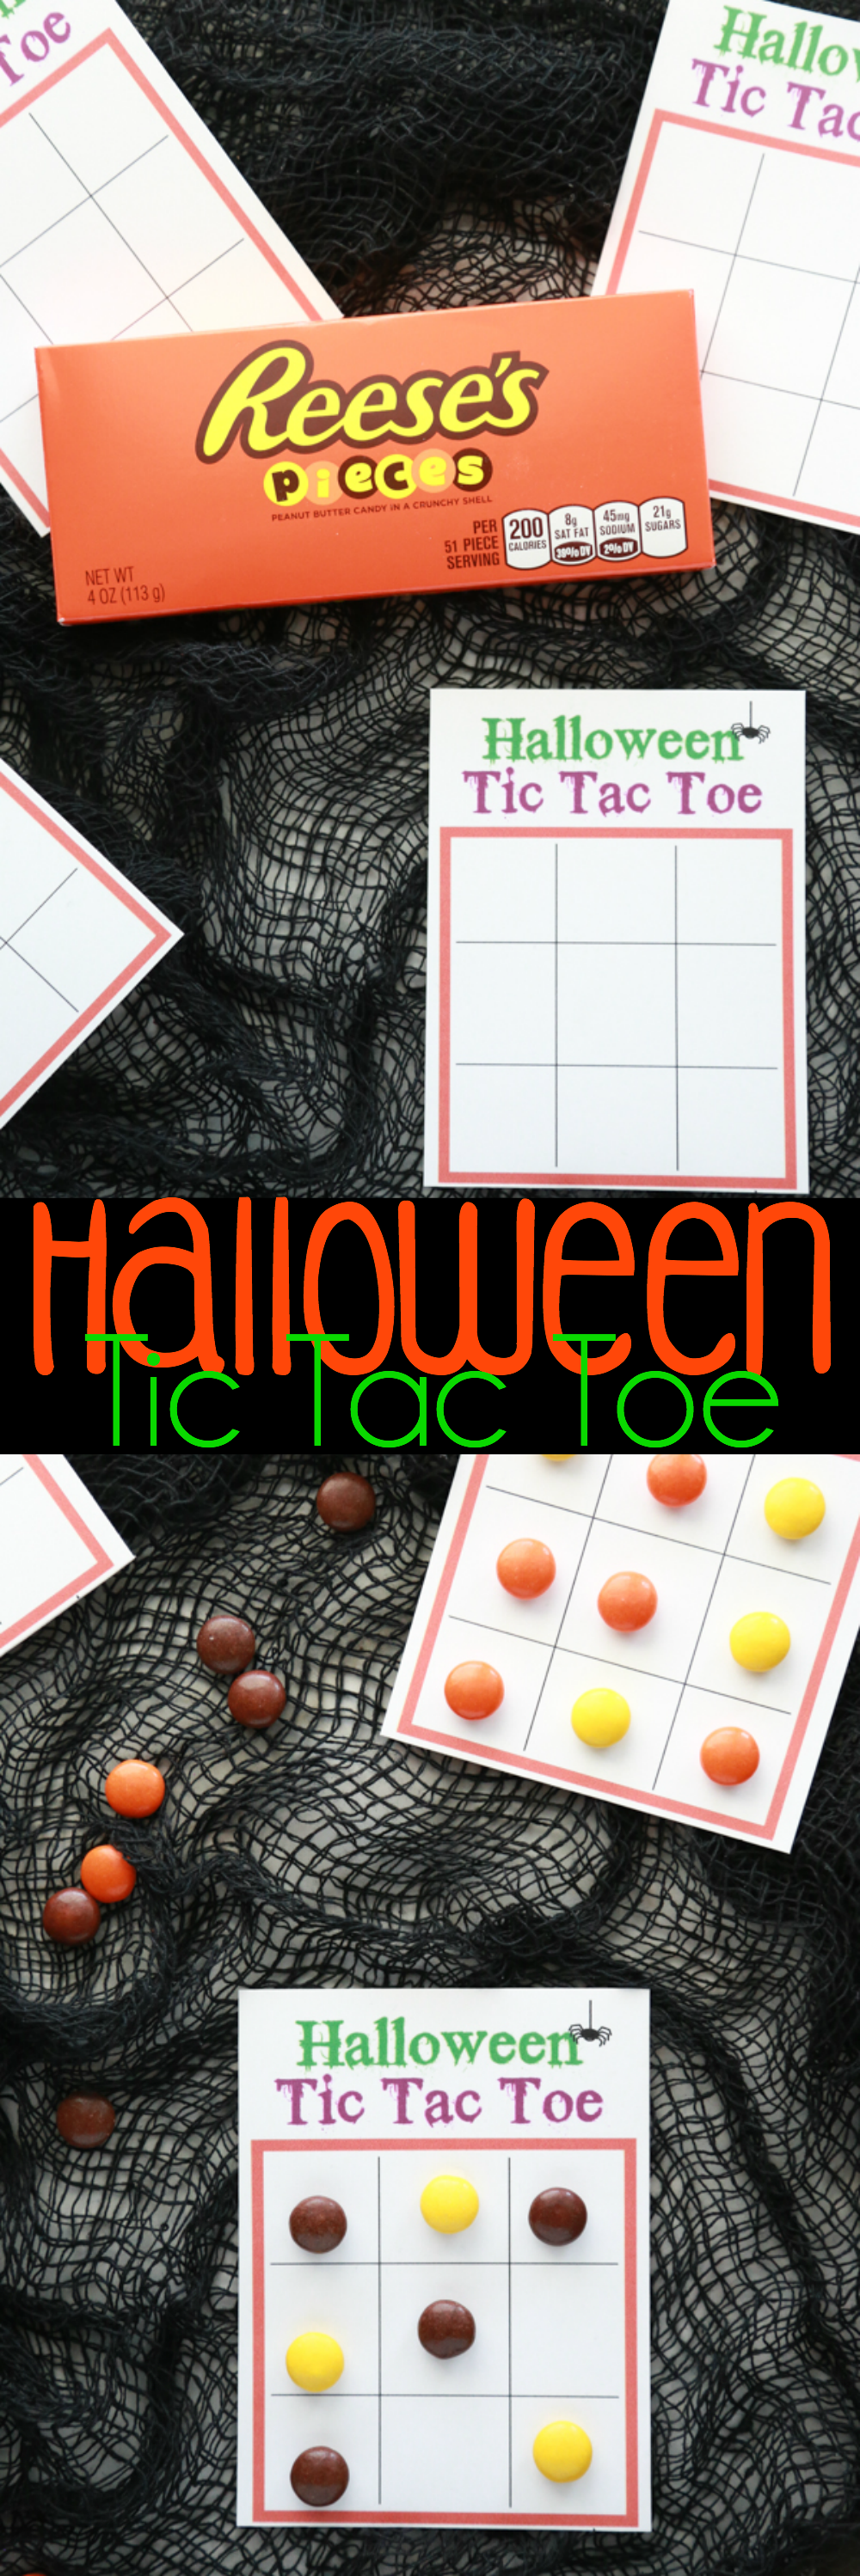 If you love to play a traditional game of Tic Tac Toe, then you'll love playing a fun game of Halloween Tic Tac Toe with this free printable and candy.